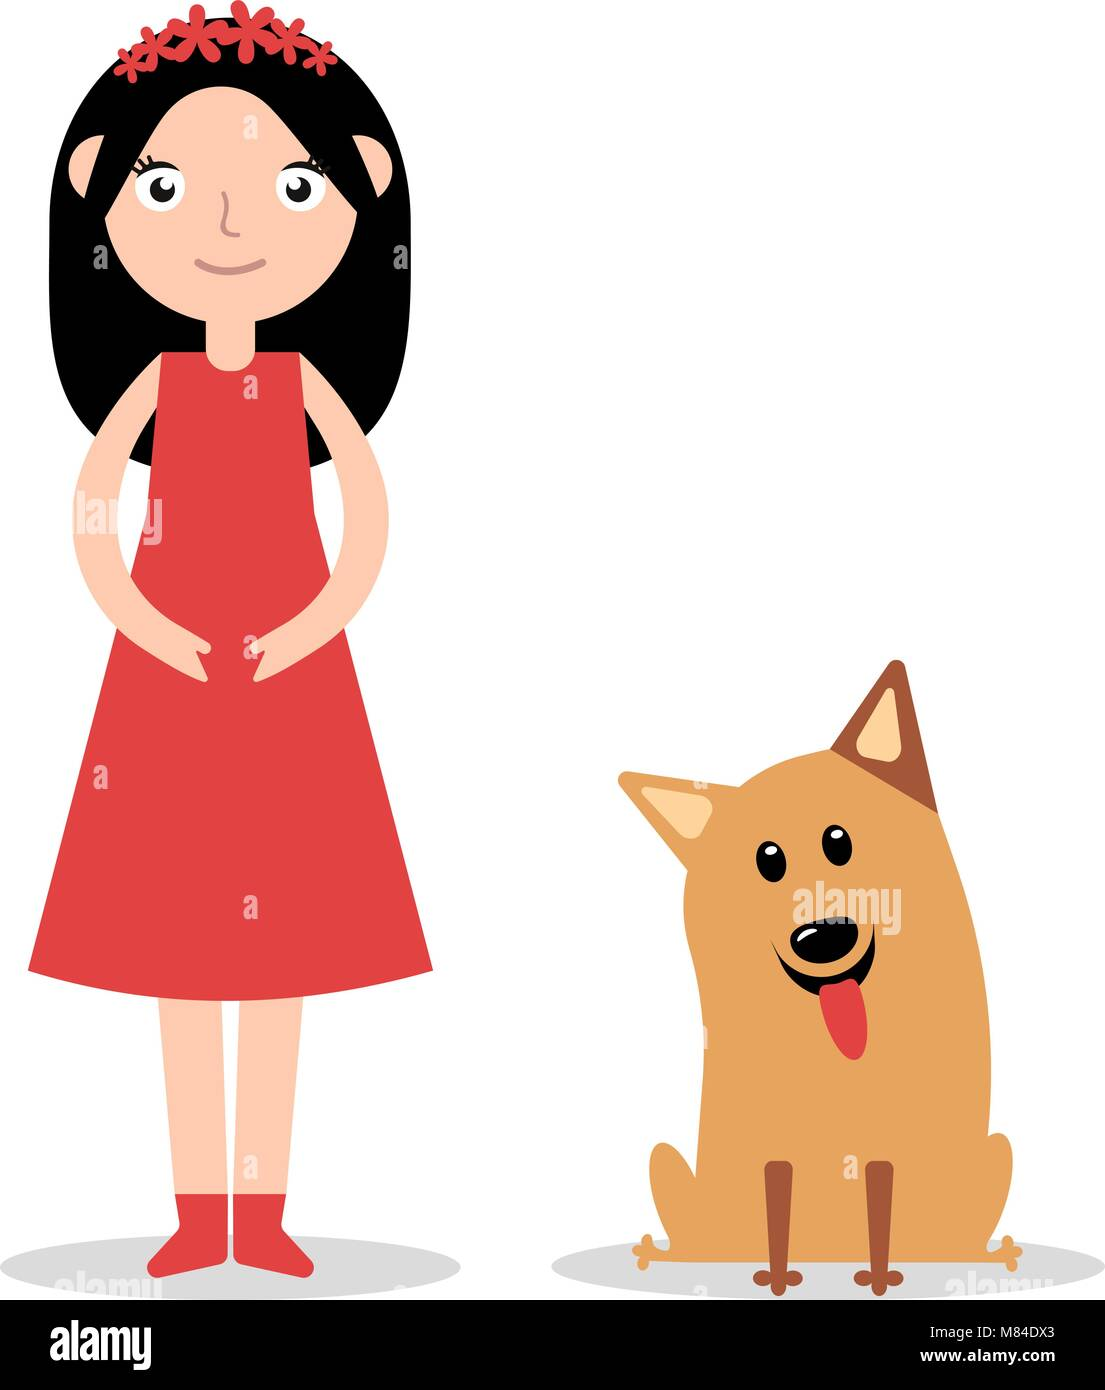 Cute Girl Pet Dog Illustration Stock Vector Images Alamy